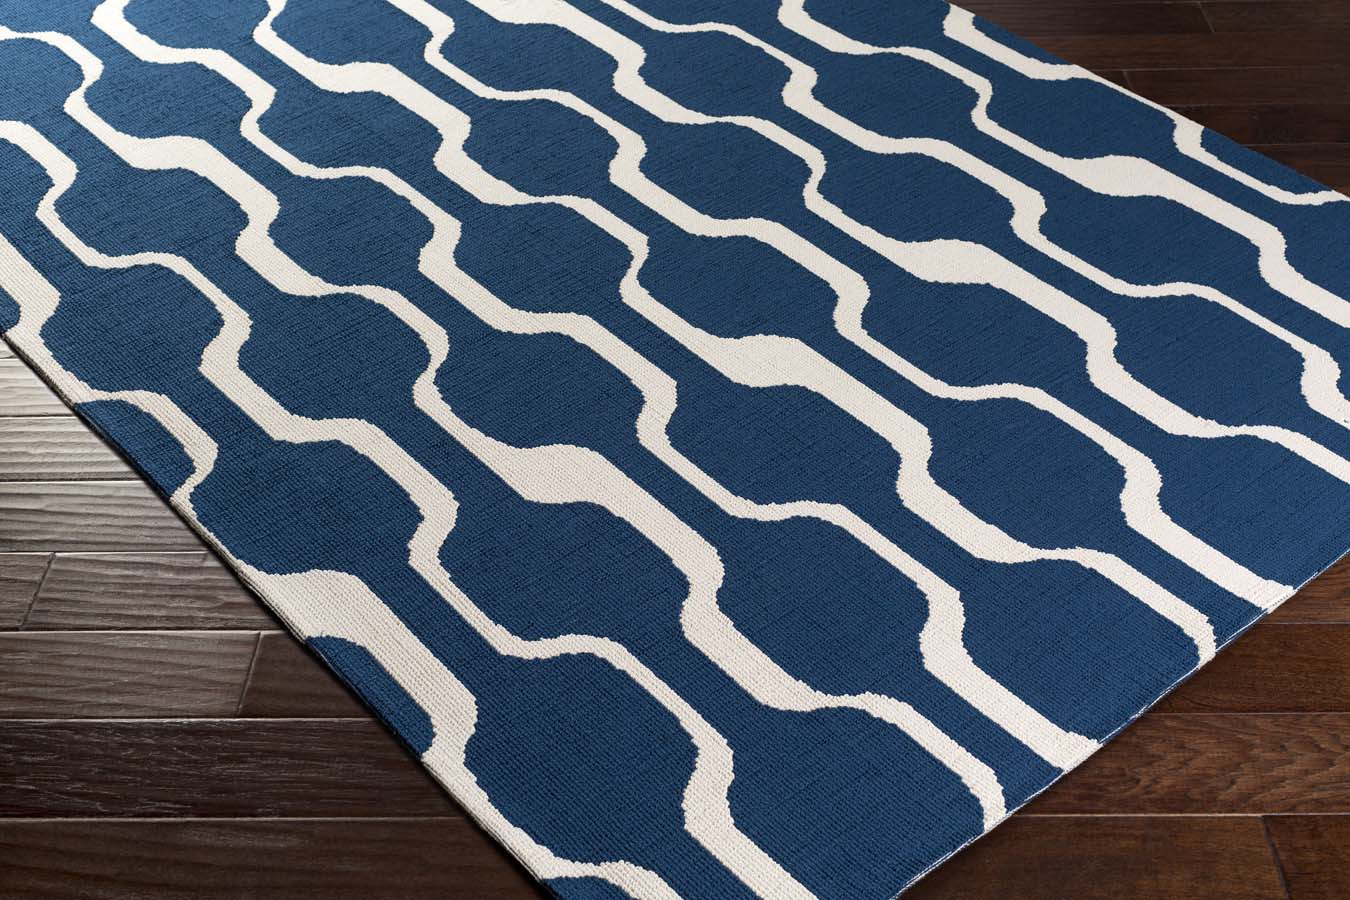 rug blue dark rugs and area x amazon com kitchen safavieh modern adirondack abstract light dp dining collection